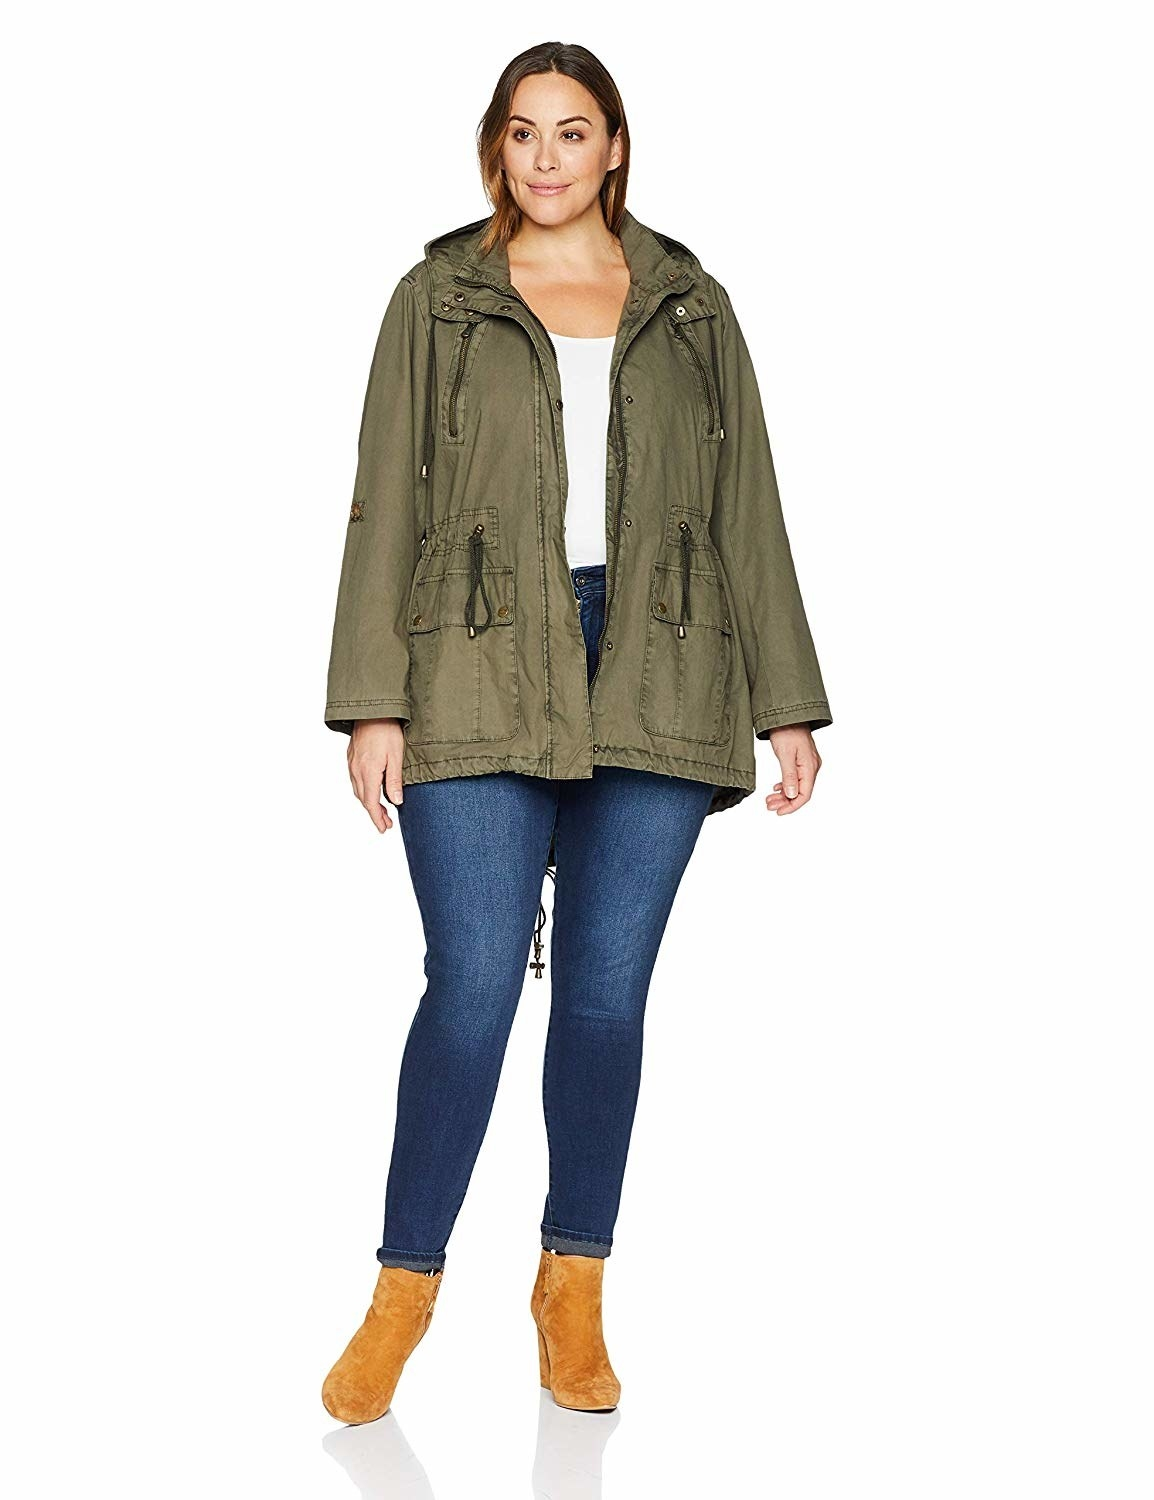 Model wearing the zipper-front utility jacket with drawstring around the middle and two large pockets on the bottom front and a hood